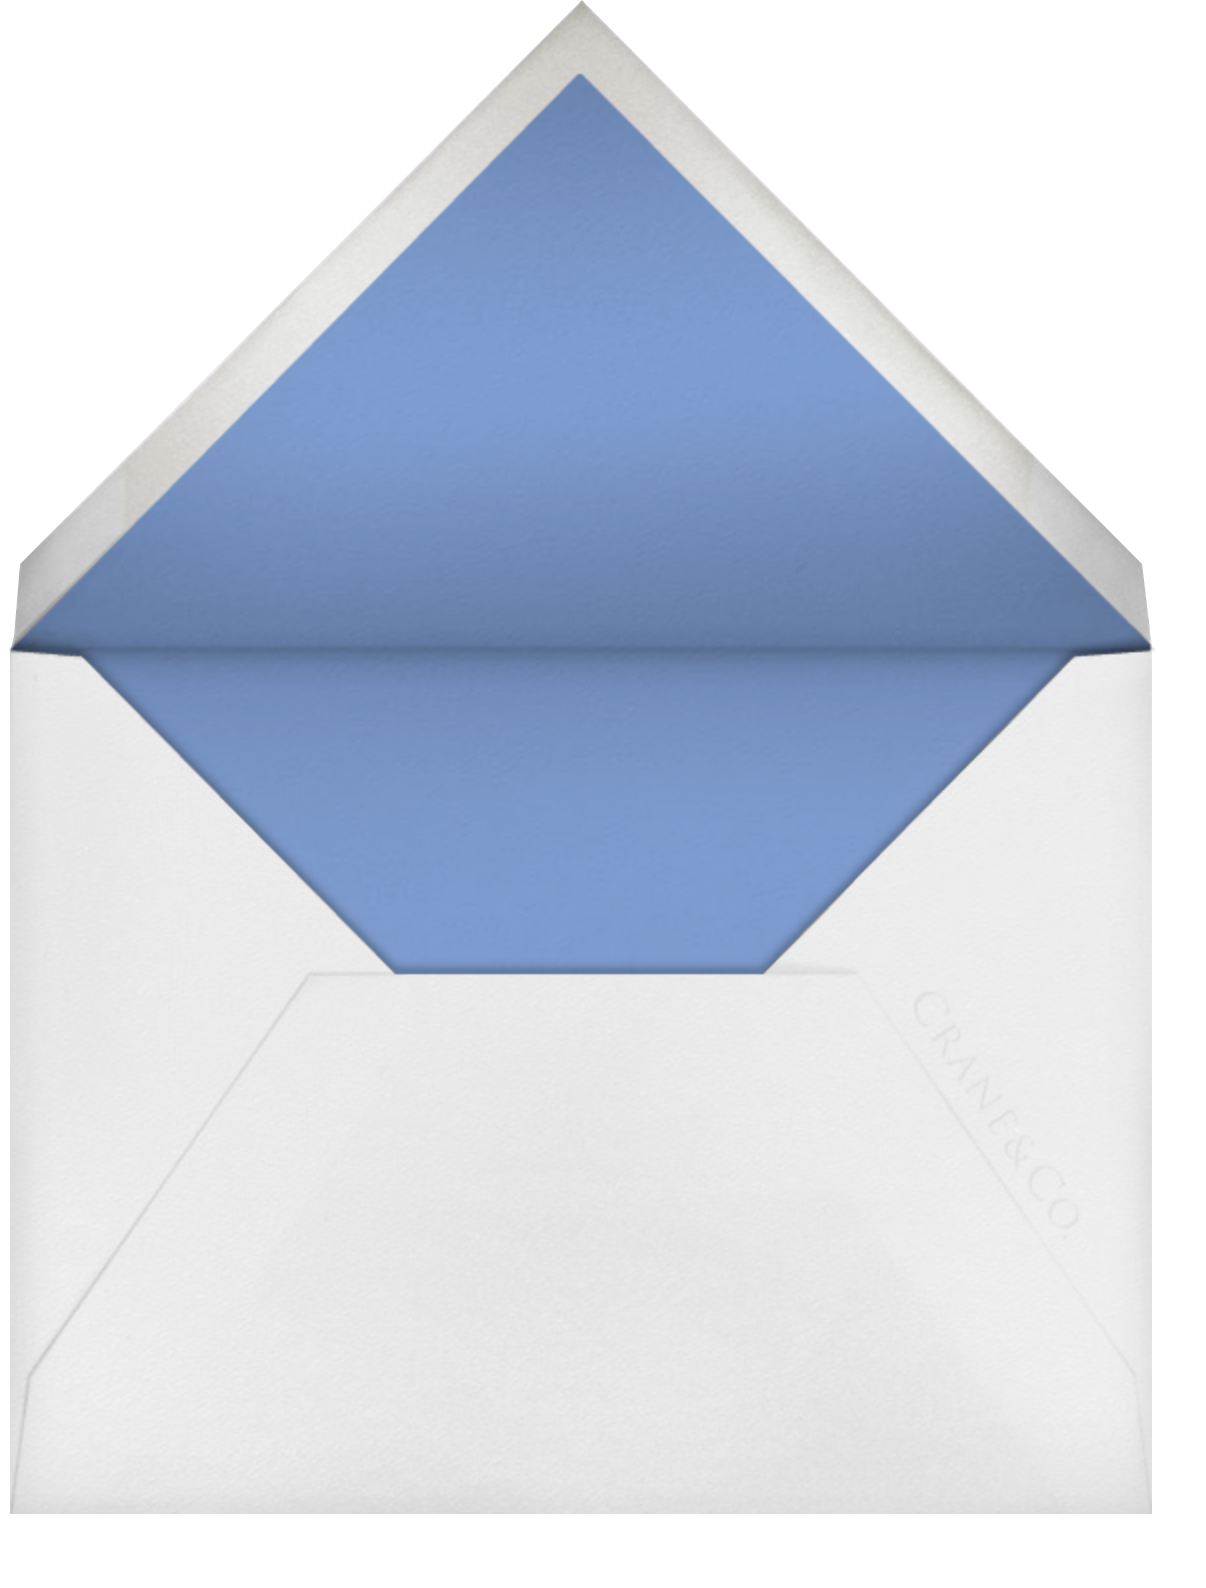 Miller (Thank You) - Newport Blue & Navy - Crane & Co. - Personalized stationery - envelope back